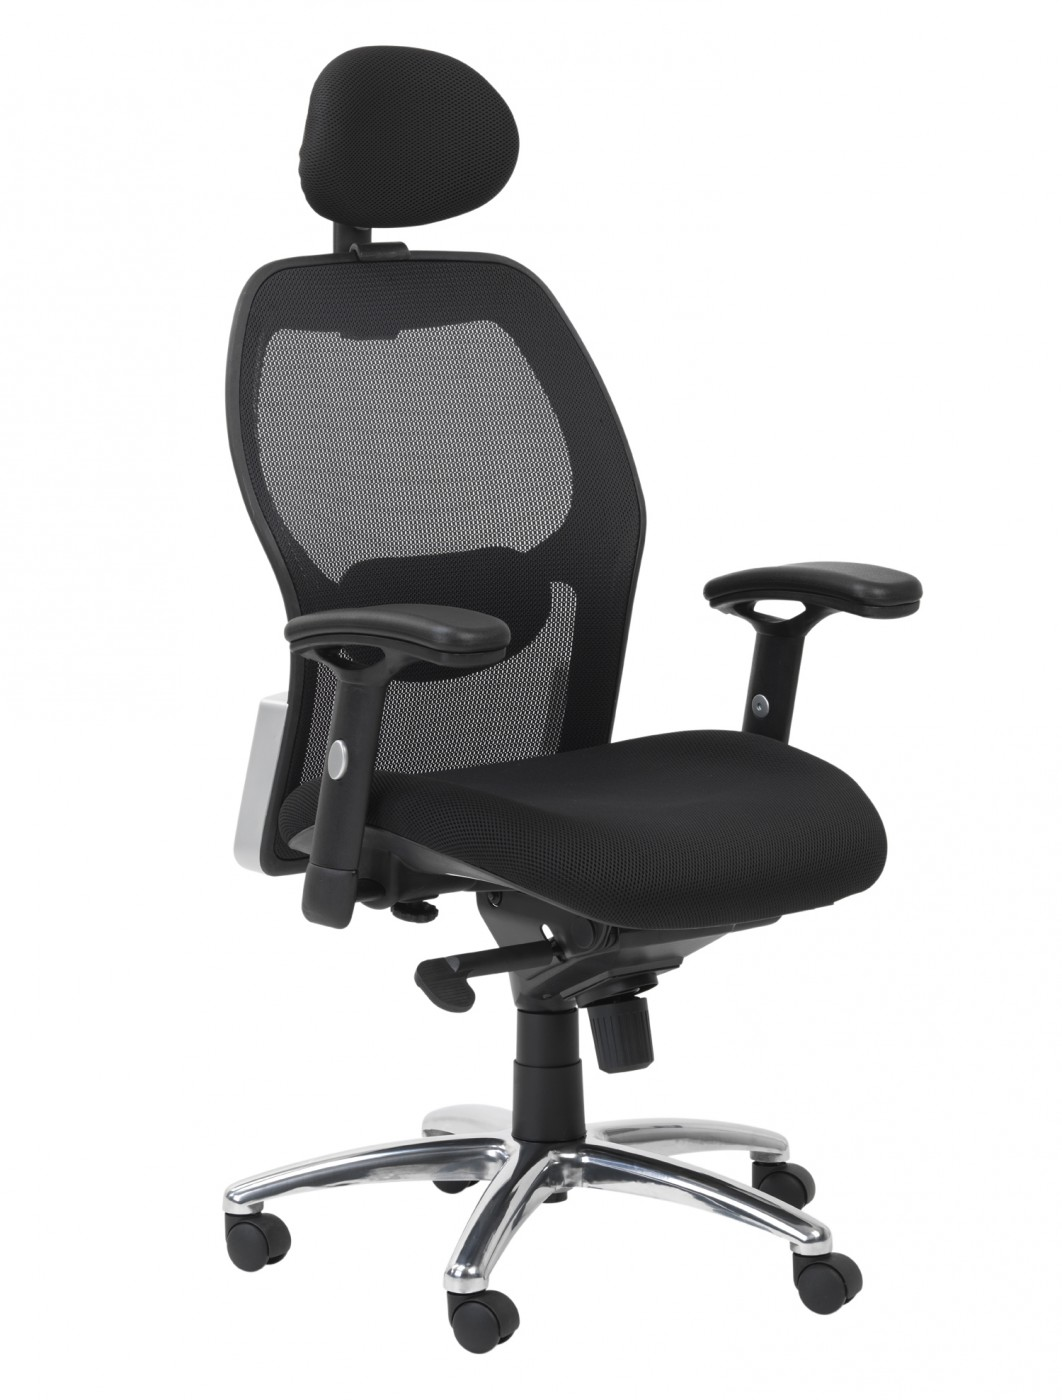 Executive Office Furniture: Alphason Portland Executive Chair AOC7301-M